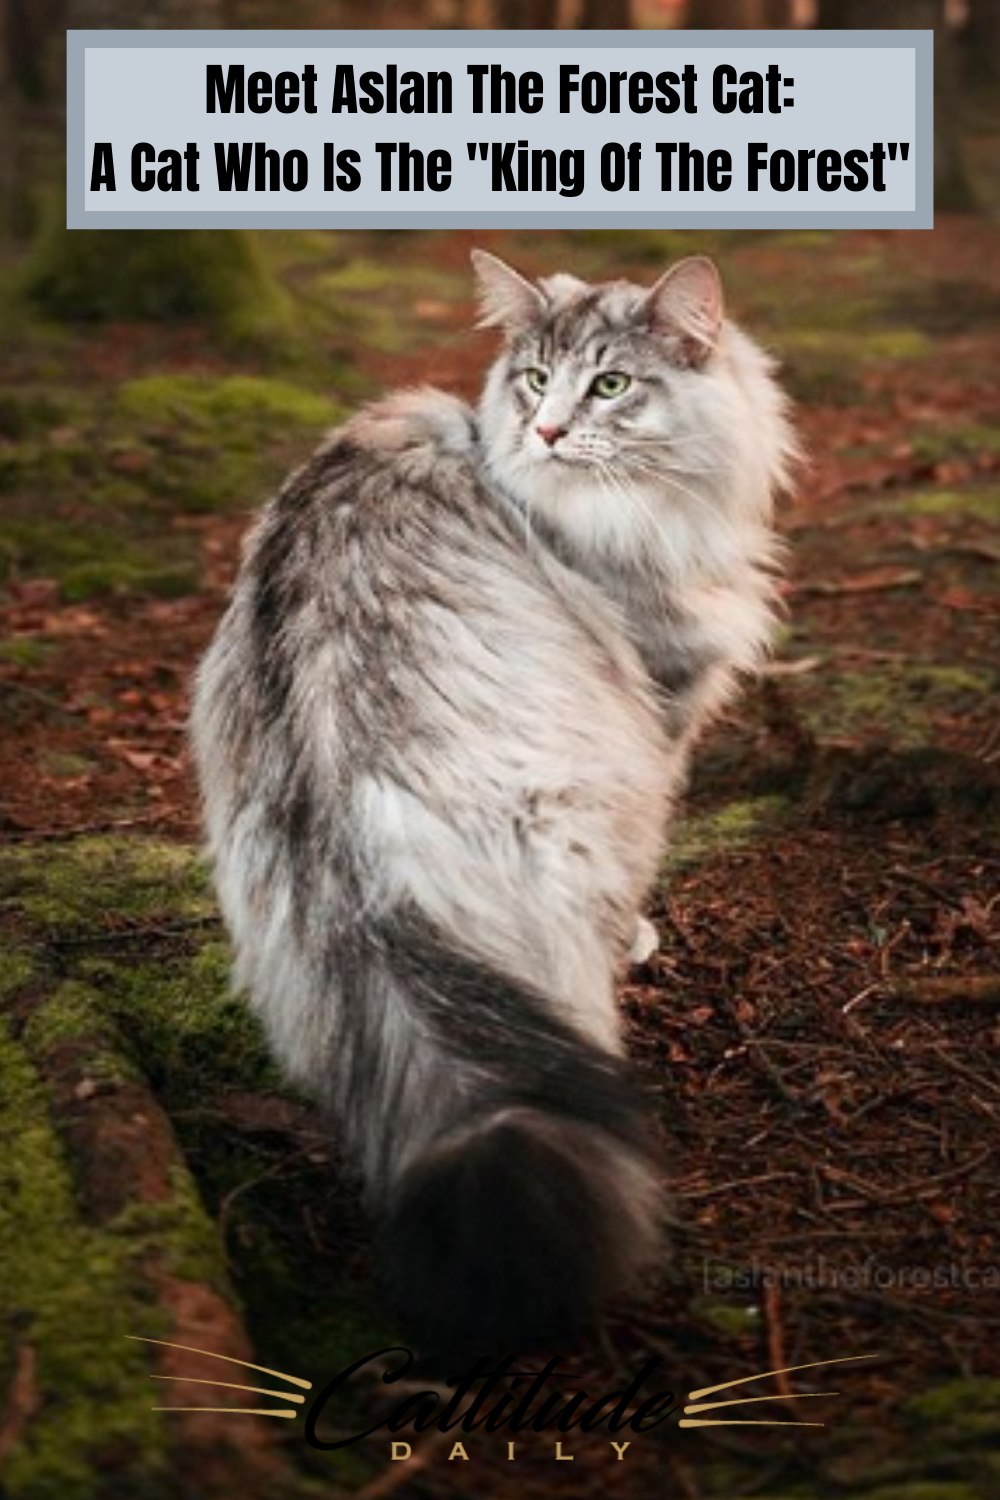 Meet Aslan The Forest Cat A Wedgie Kitty With A Love For The Great Outdoors In 2020 Forest Cat Cats Norwegian Cat